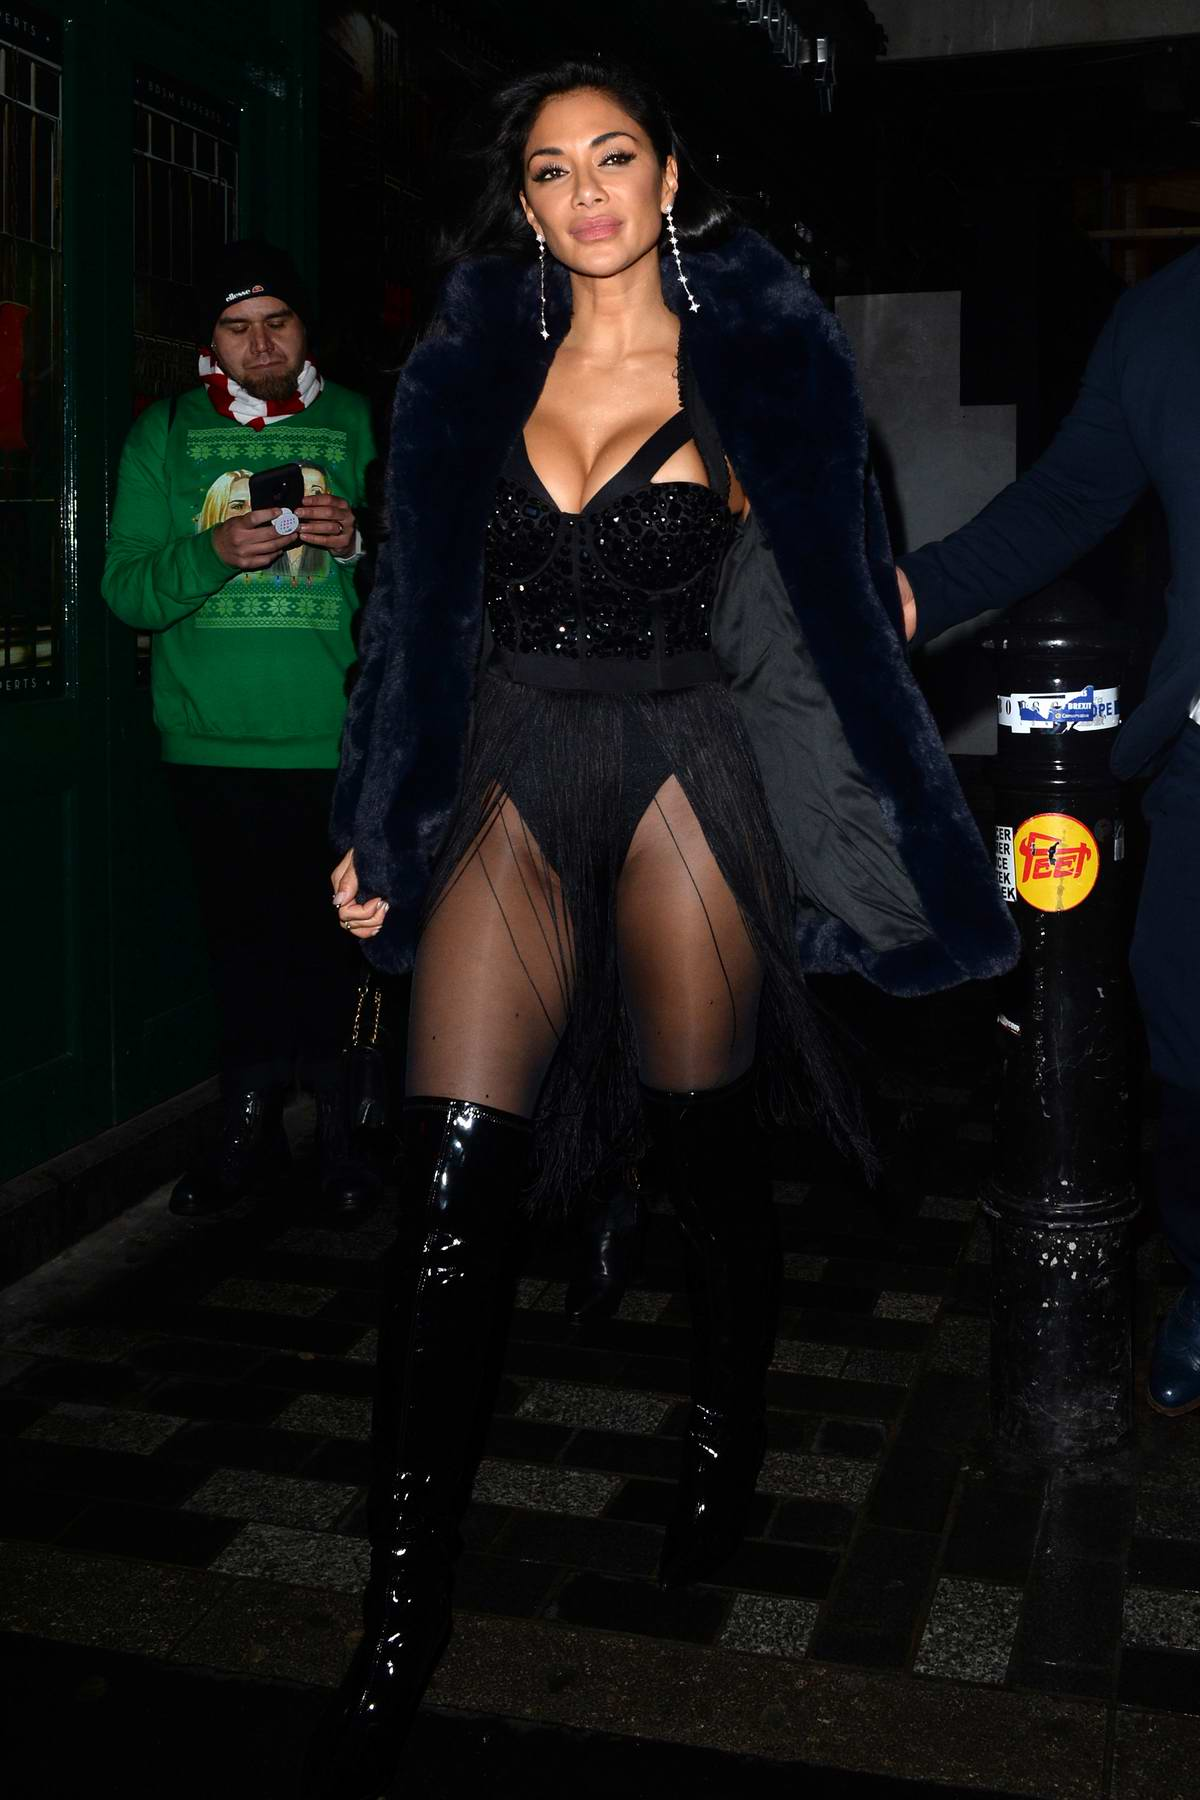 Nicole Scherzinger spotted as she leaves after a performance at the Boulevard Theater in London, UK